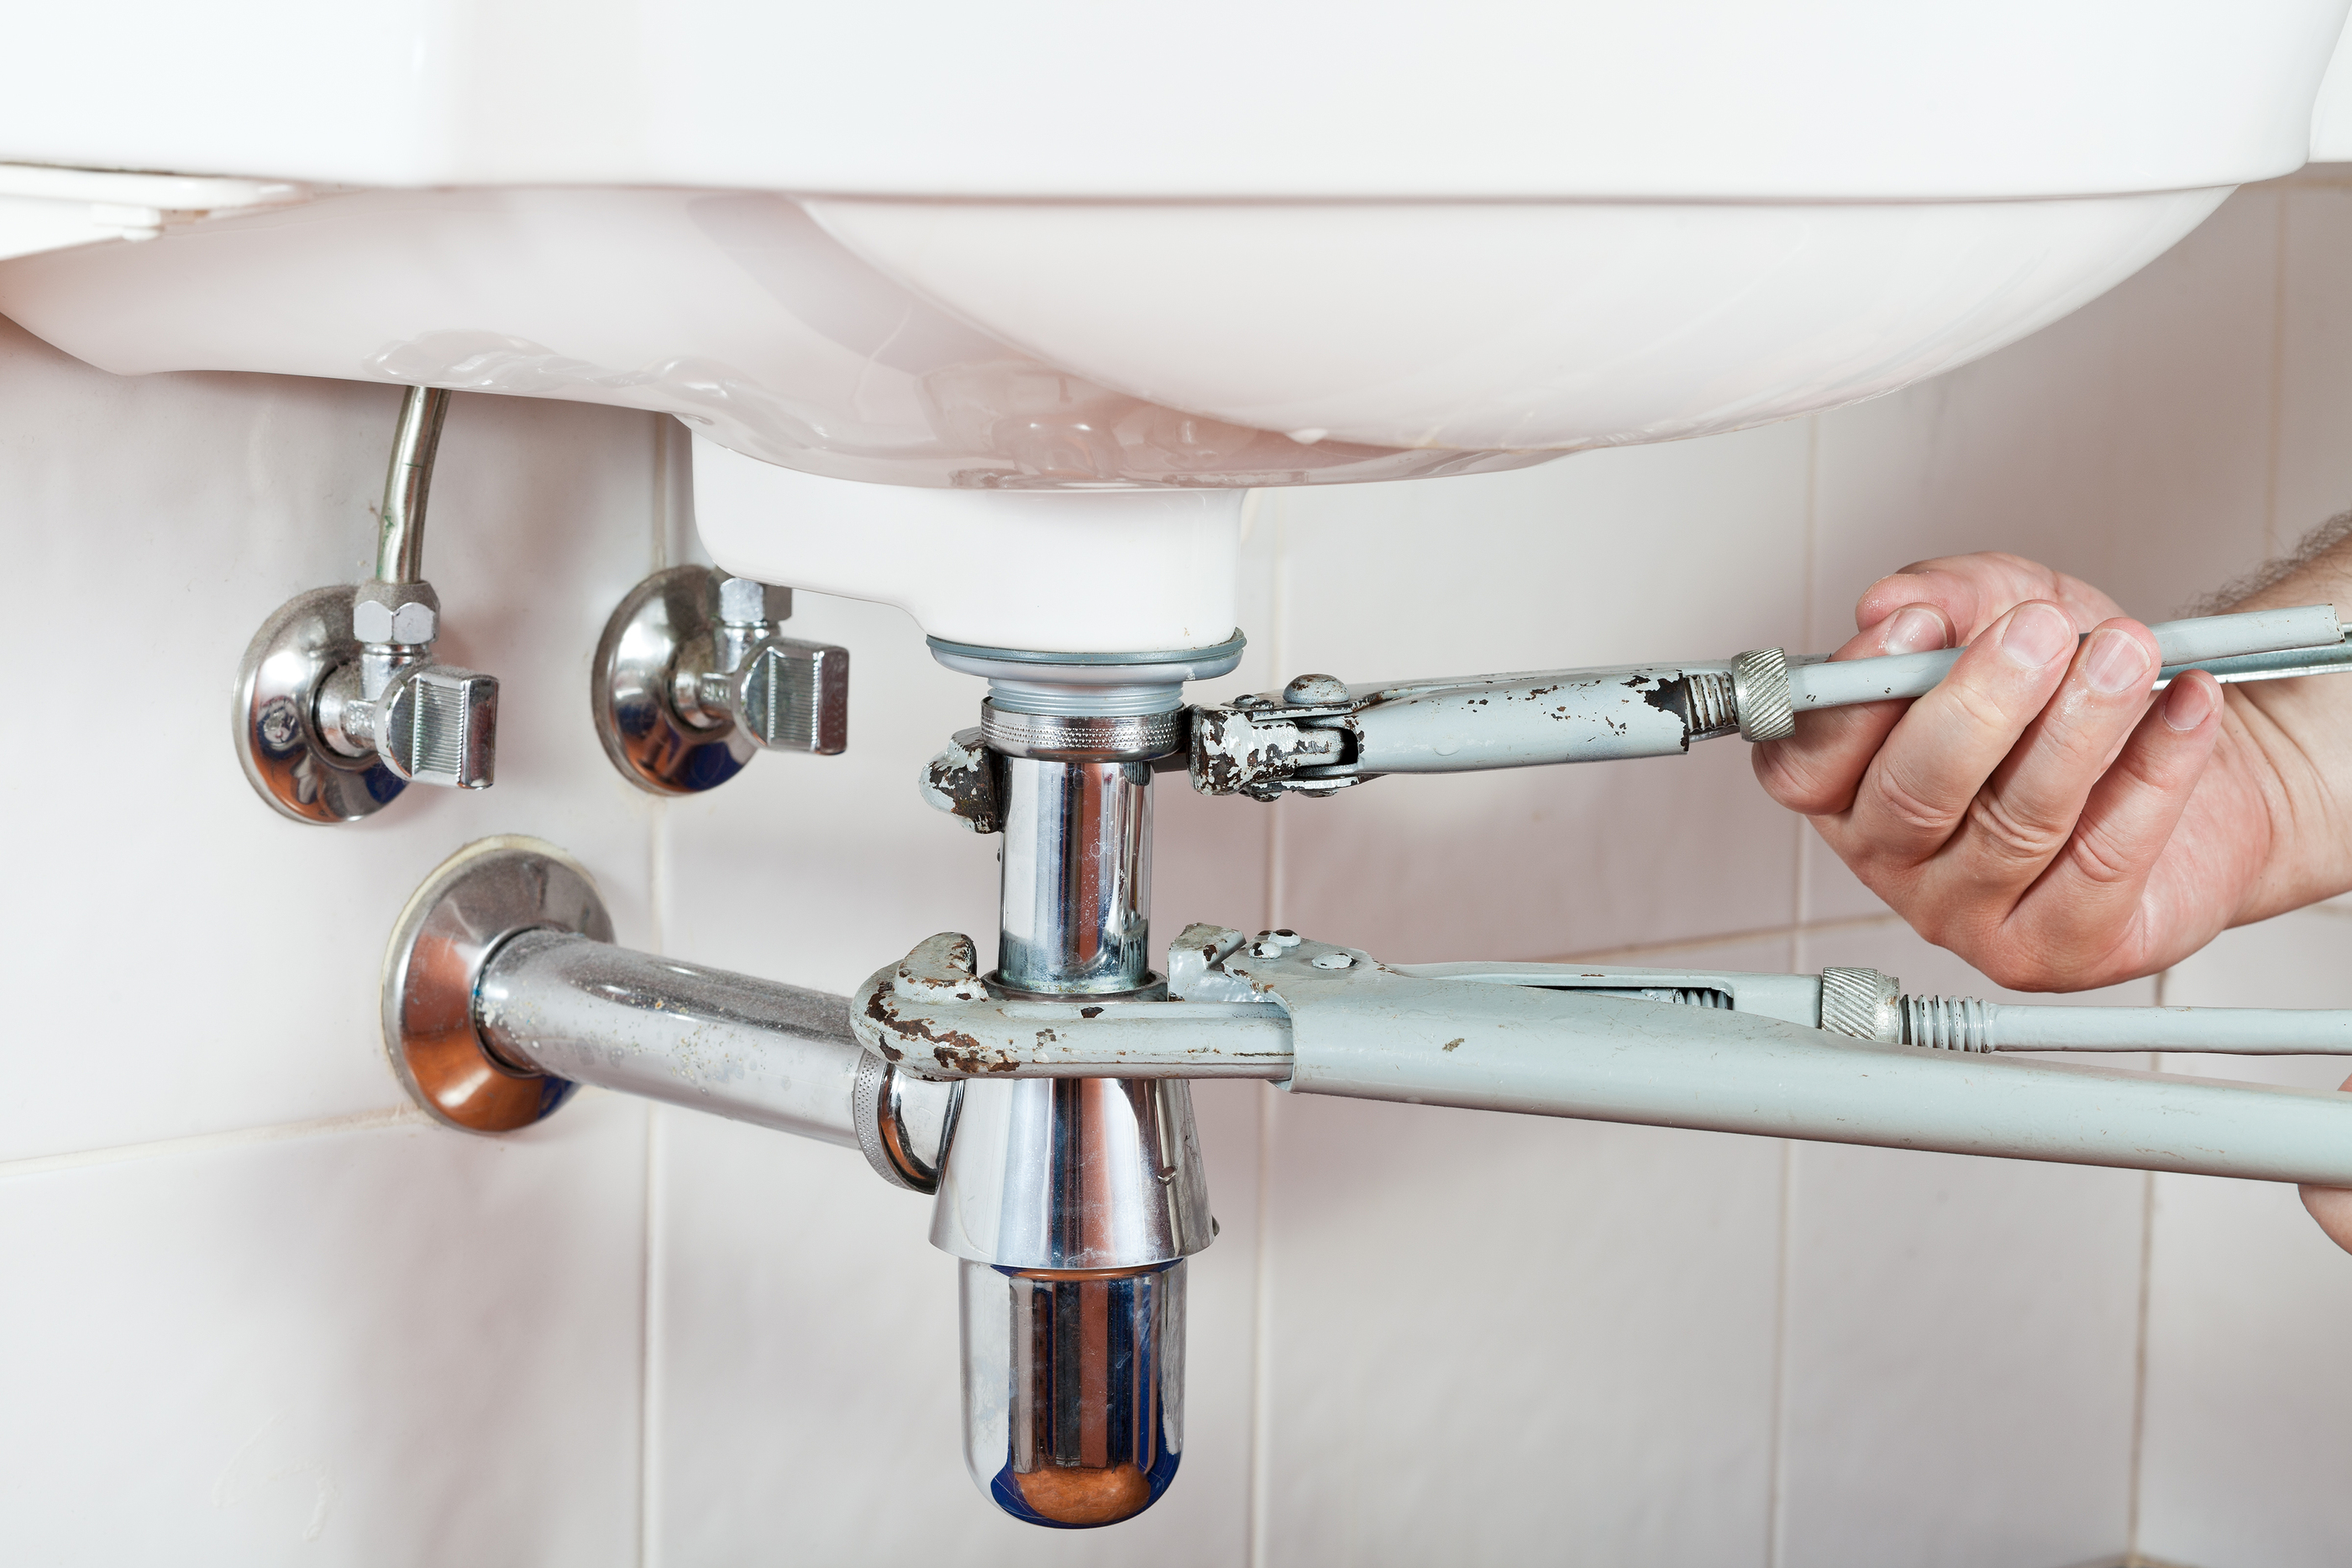 plumber repairing sink drain by pipe-wrenches close up